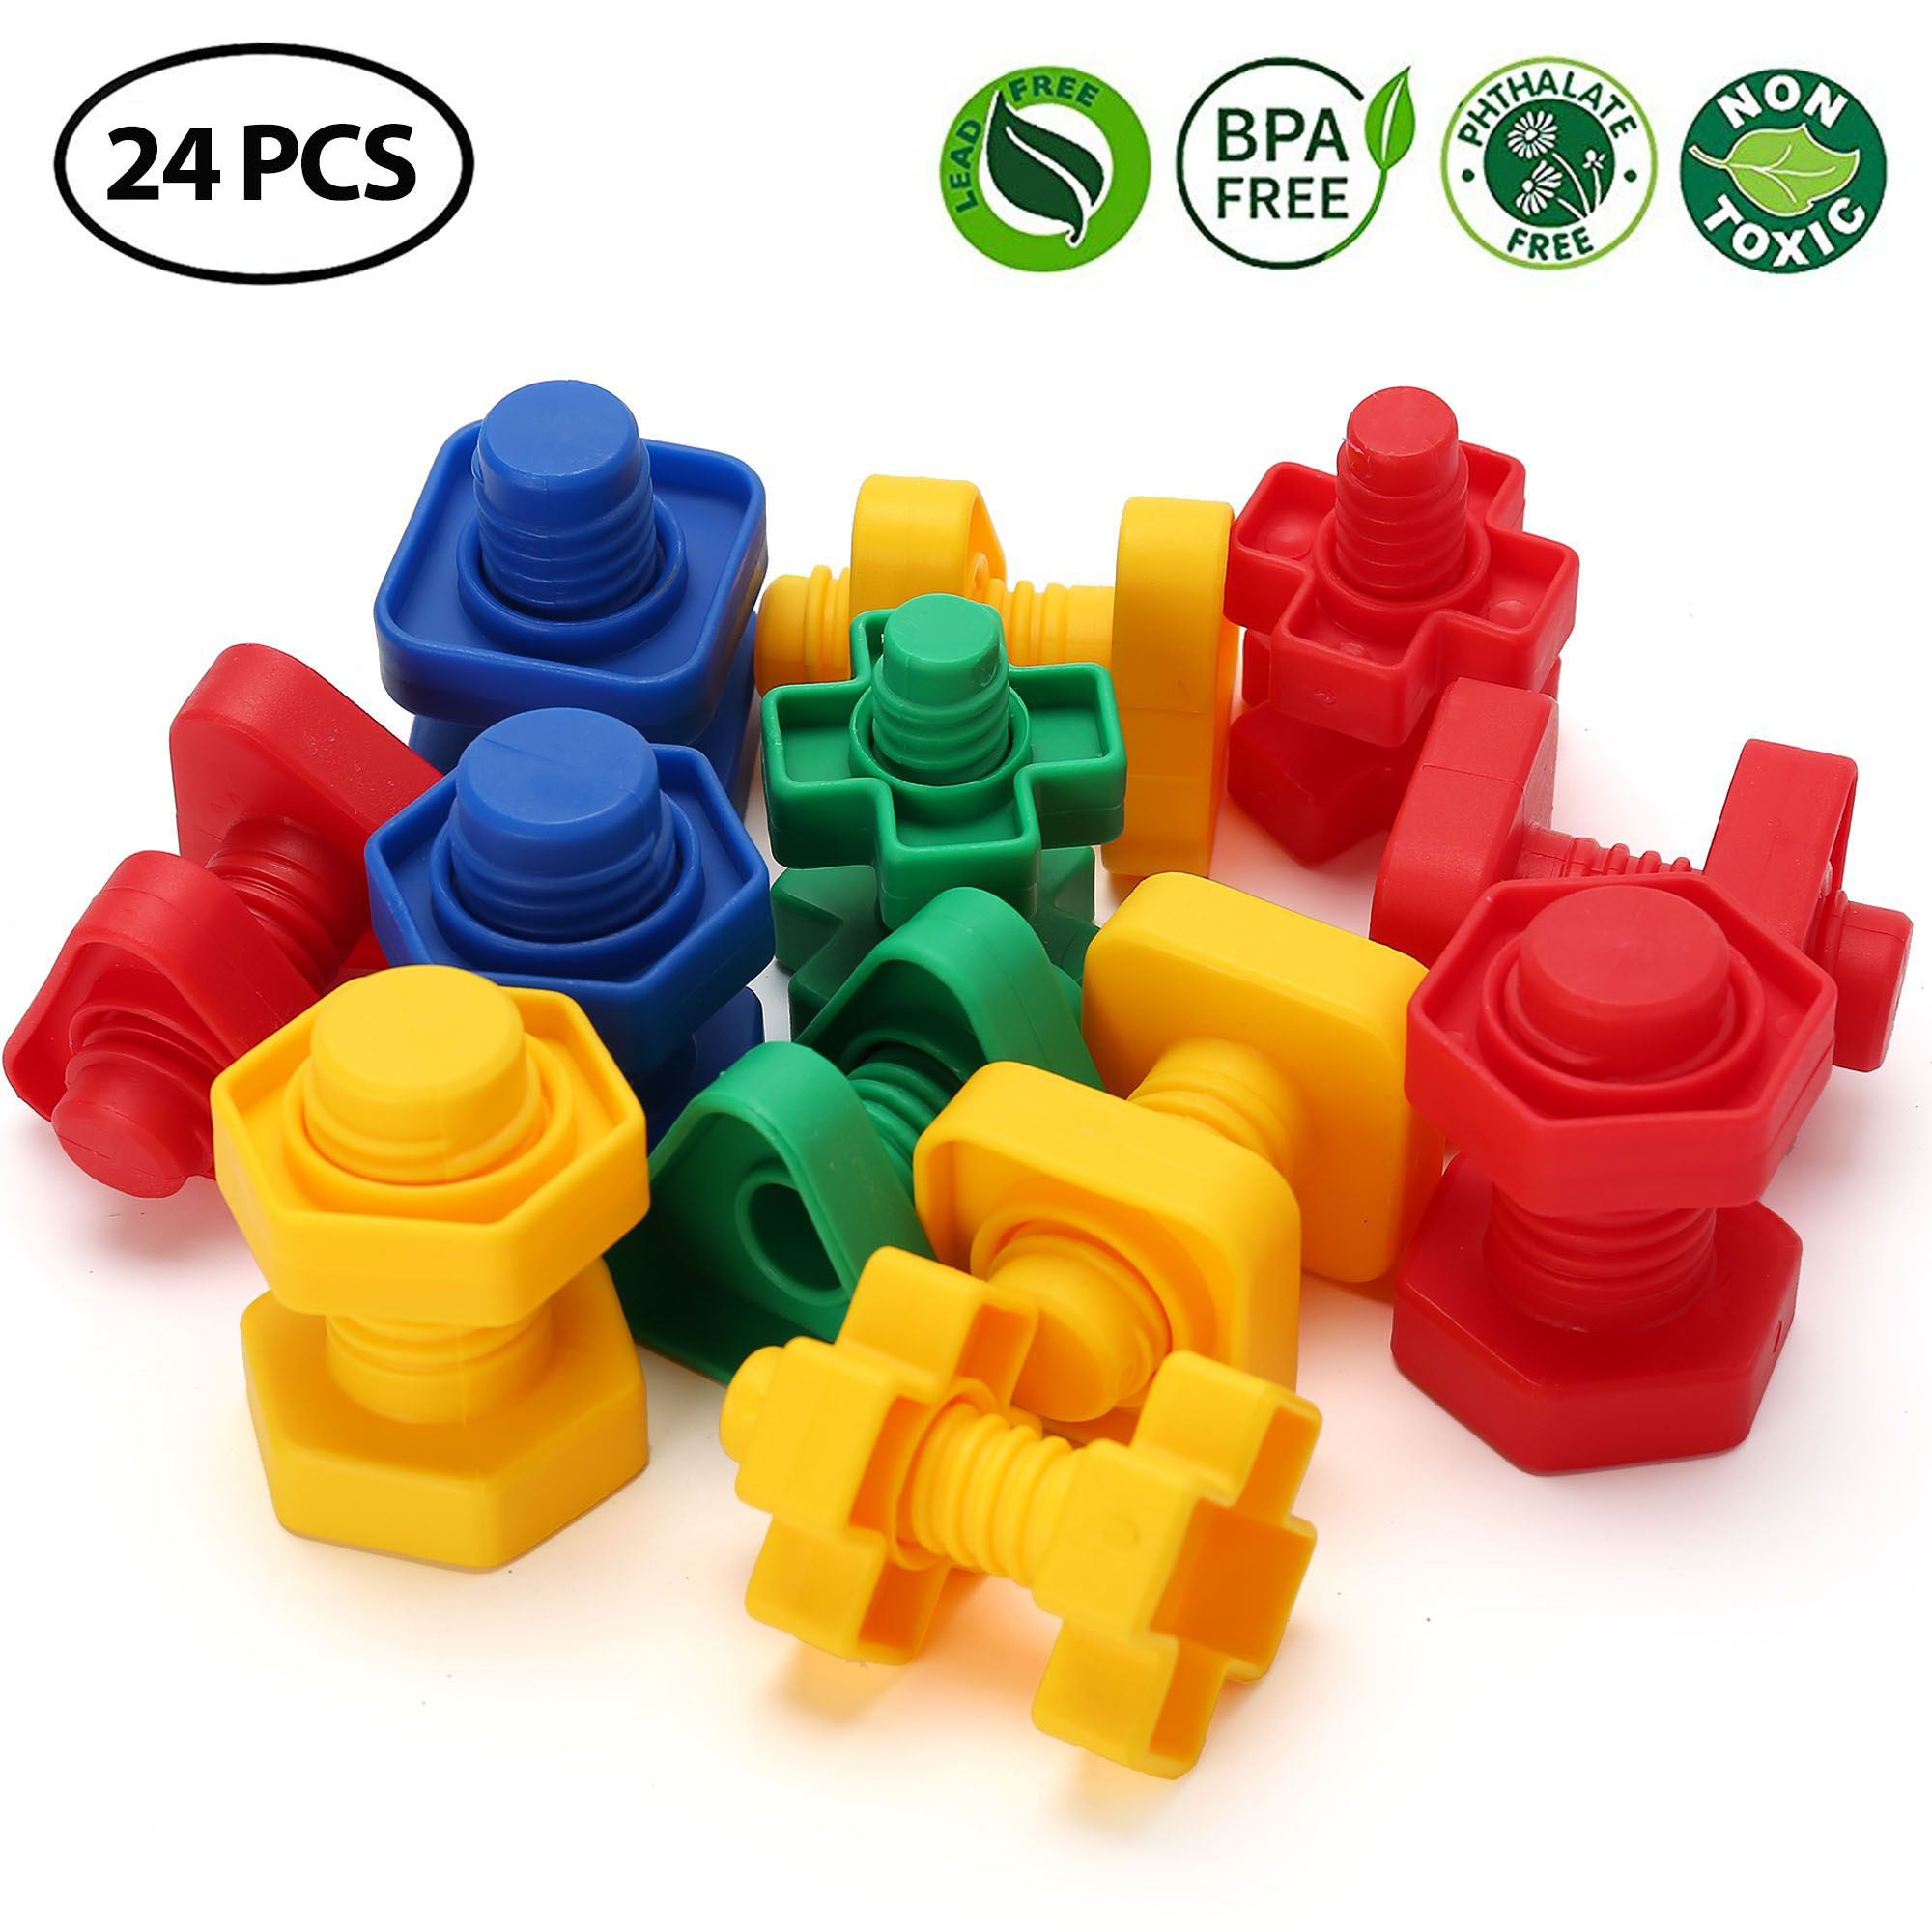 Jumbo Nuts And Bolts Toys For Toddler Kids Girls Boy 1 2